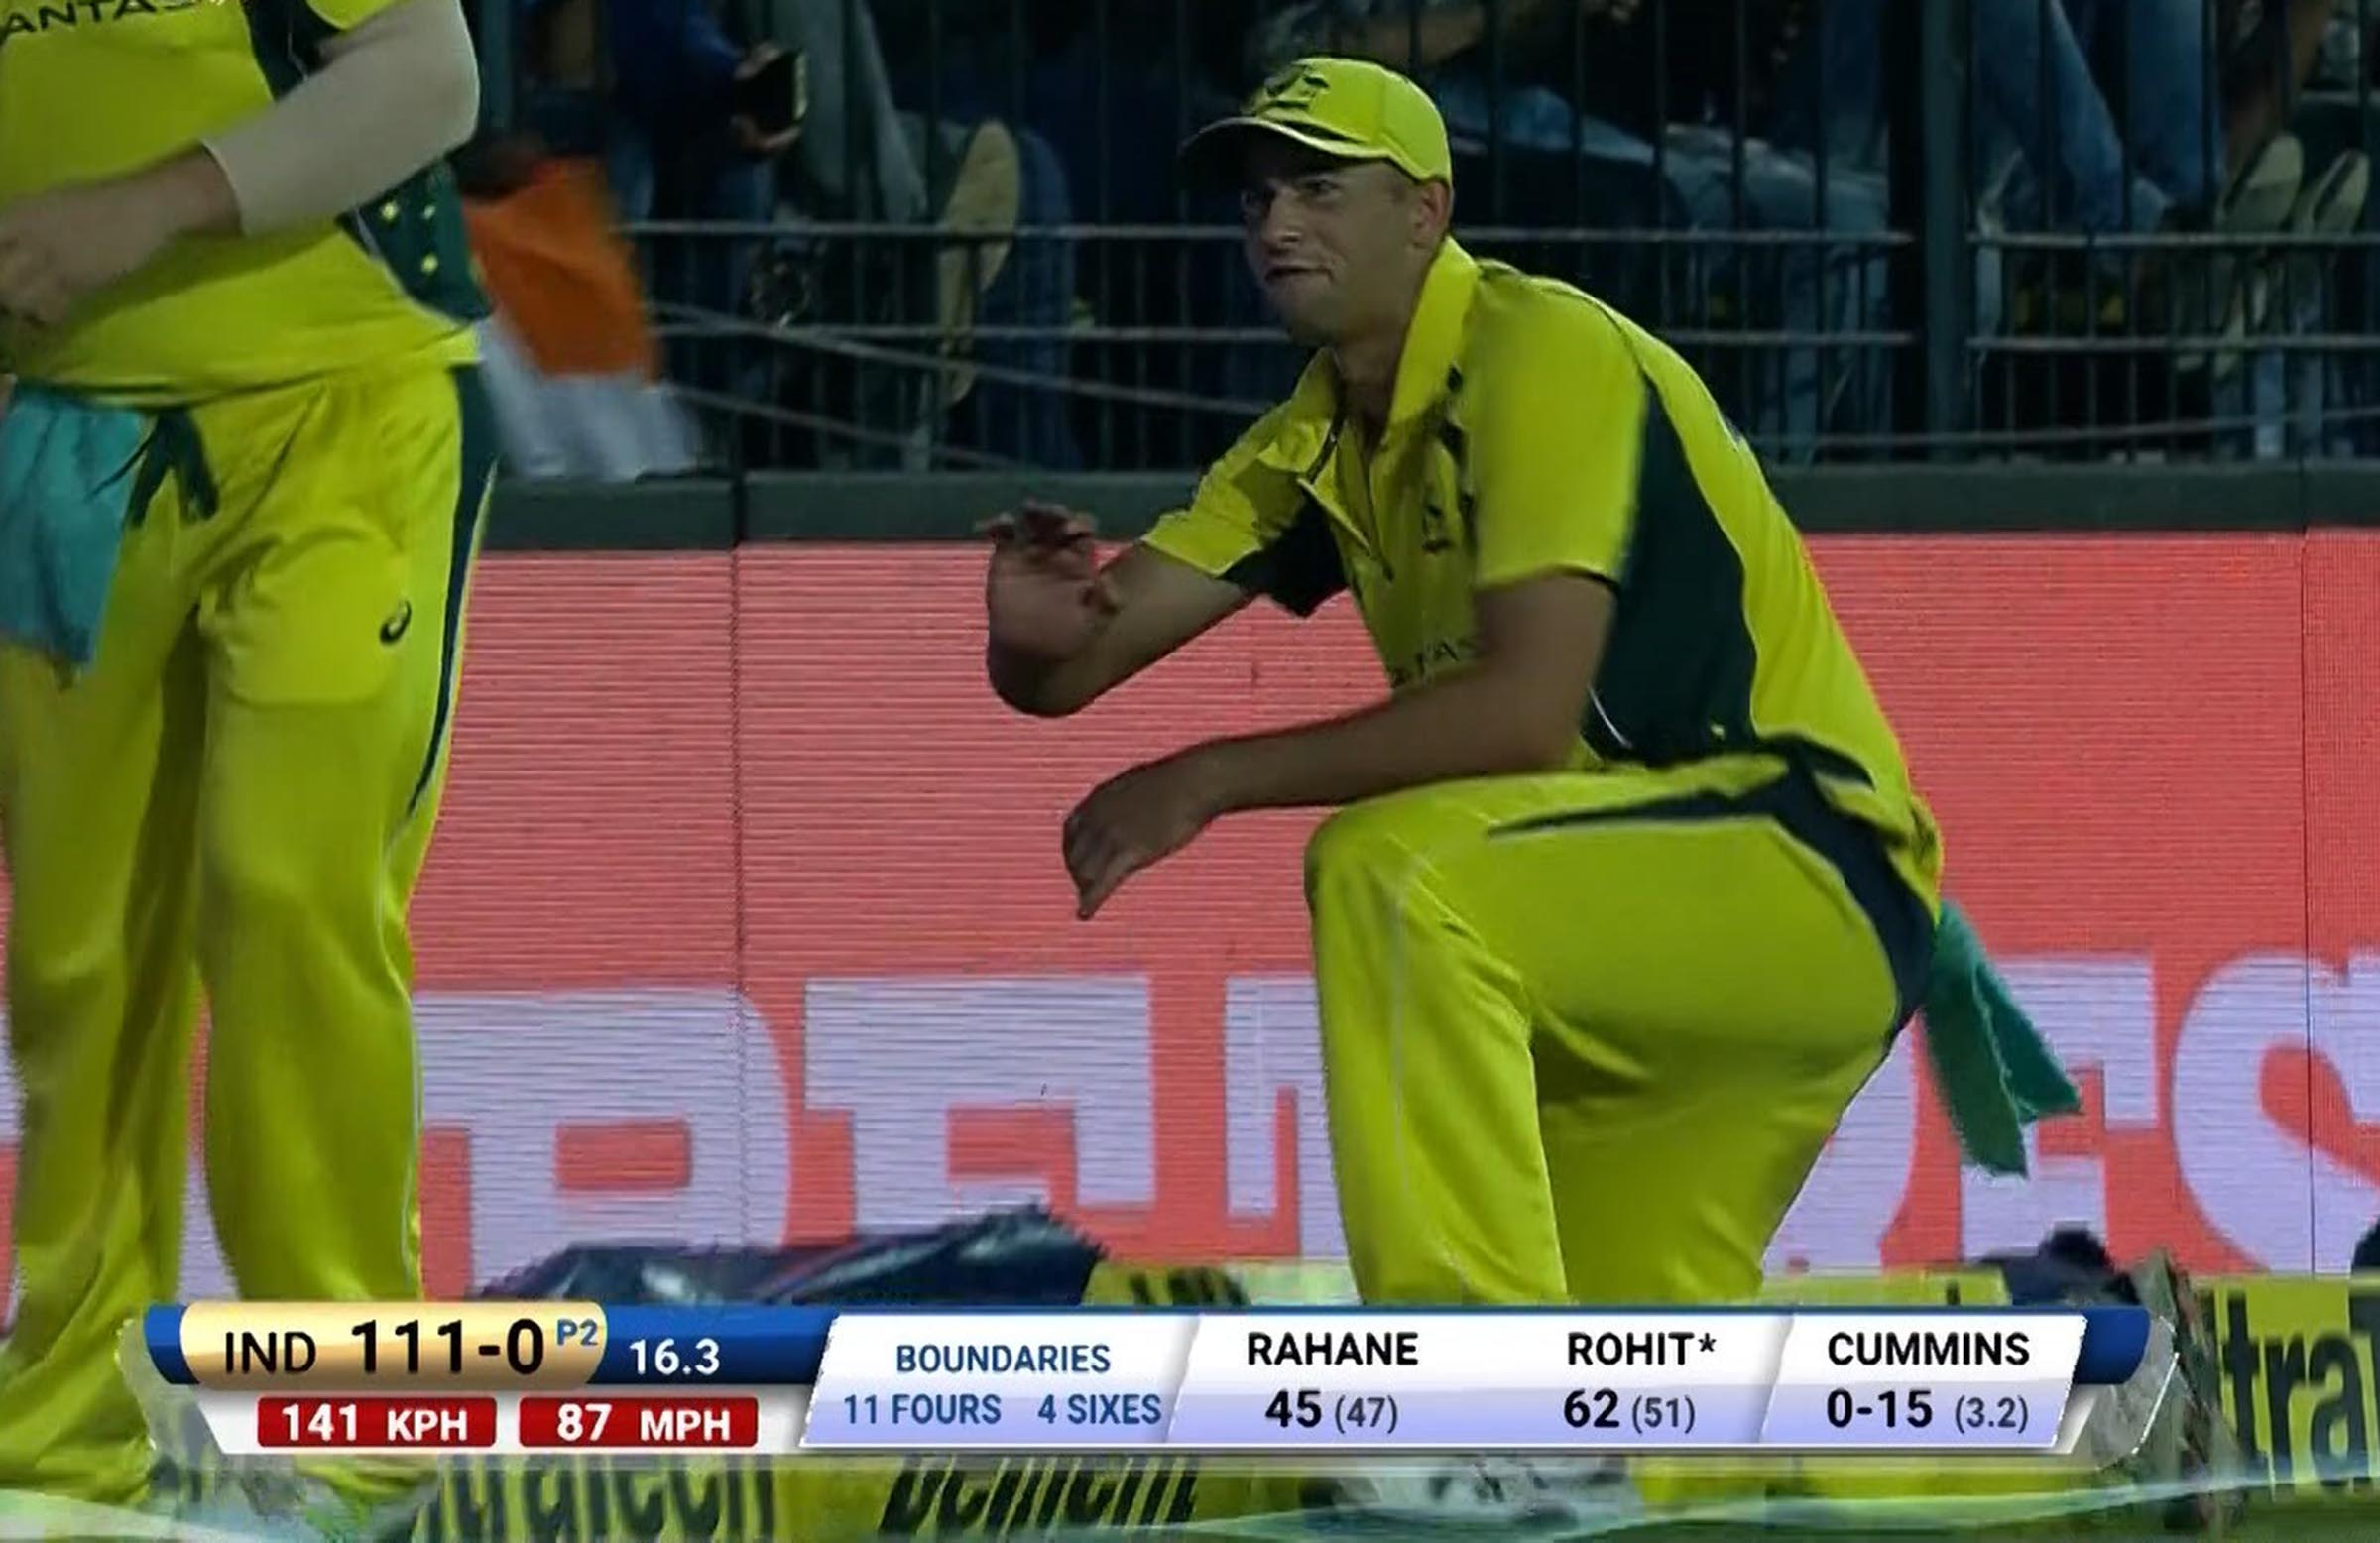 Agar reacts after sustaining the injury near the boundary // Fox Sports